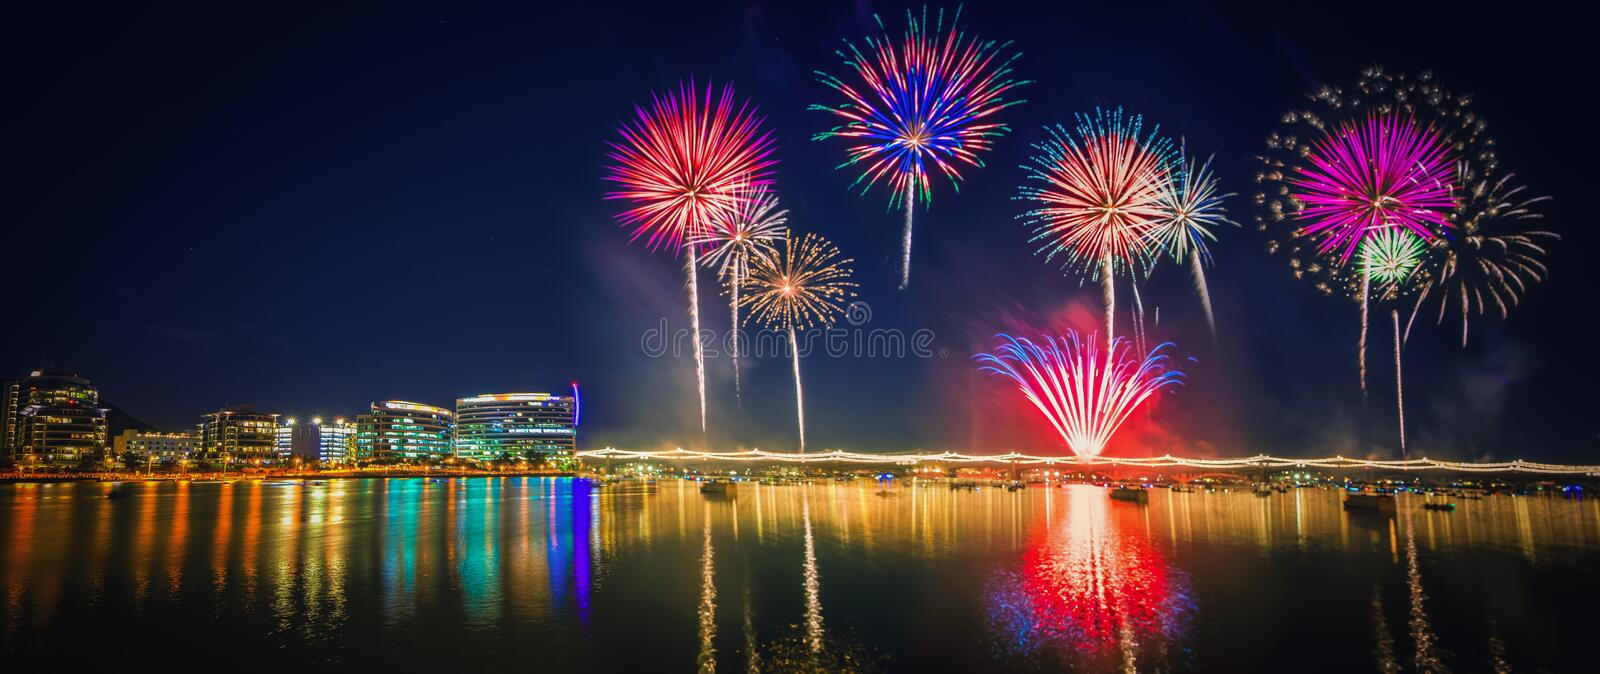 Colorful firework over Tempe lake royalty free stock images